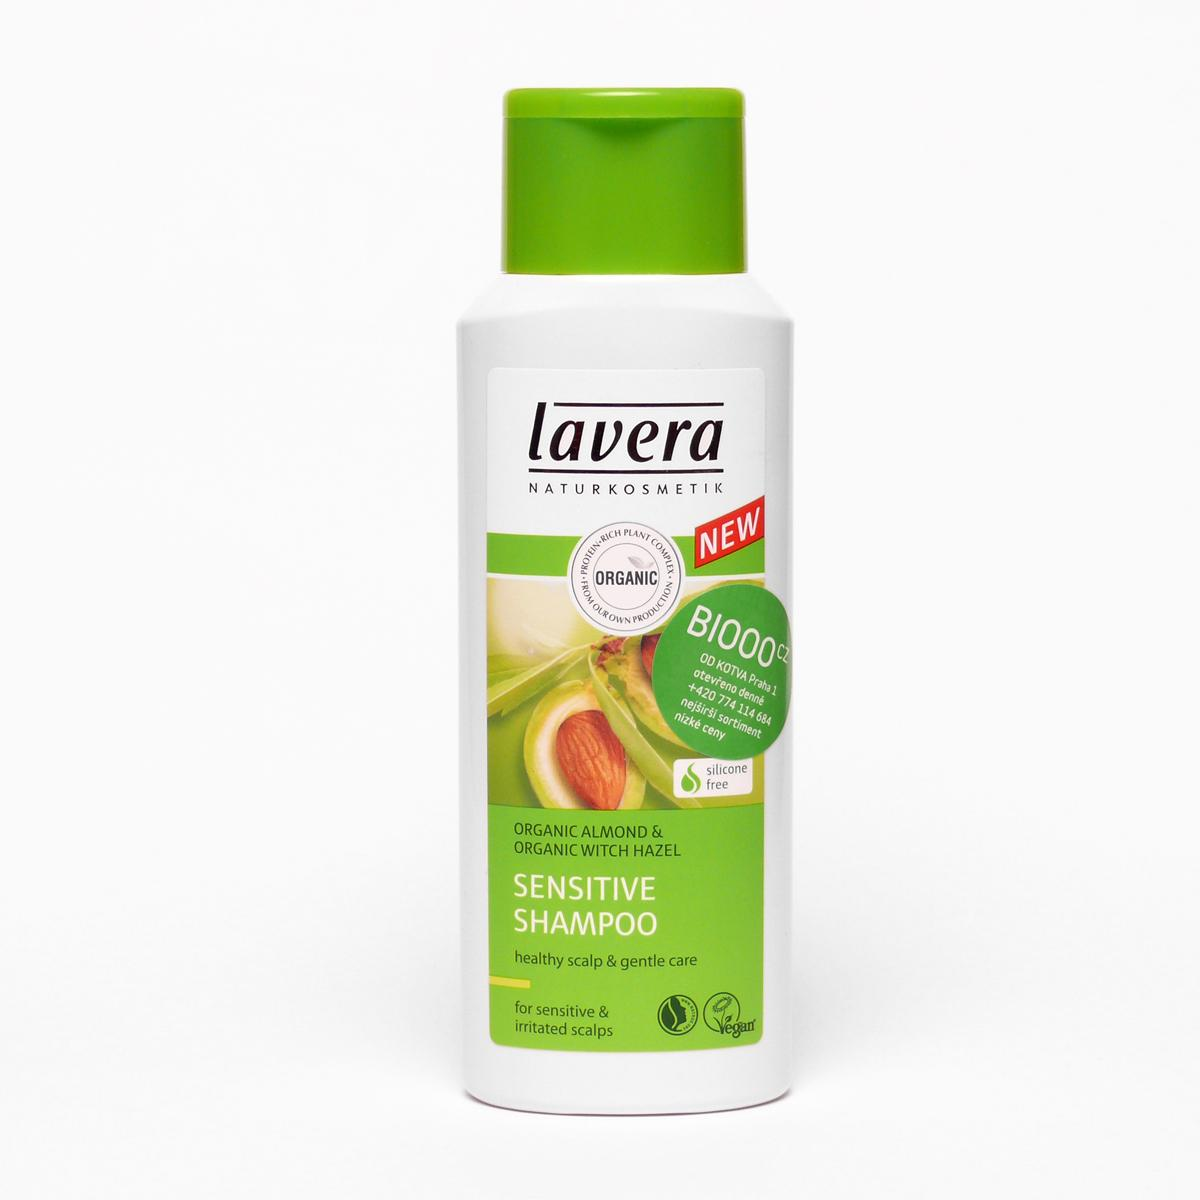 Lavera Šampon Sensitive, Hair Pro 200 ml